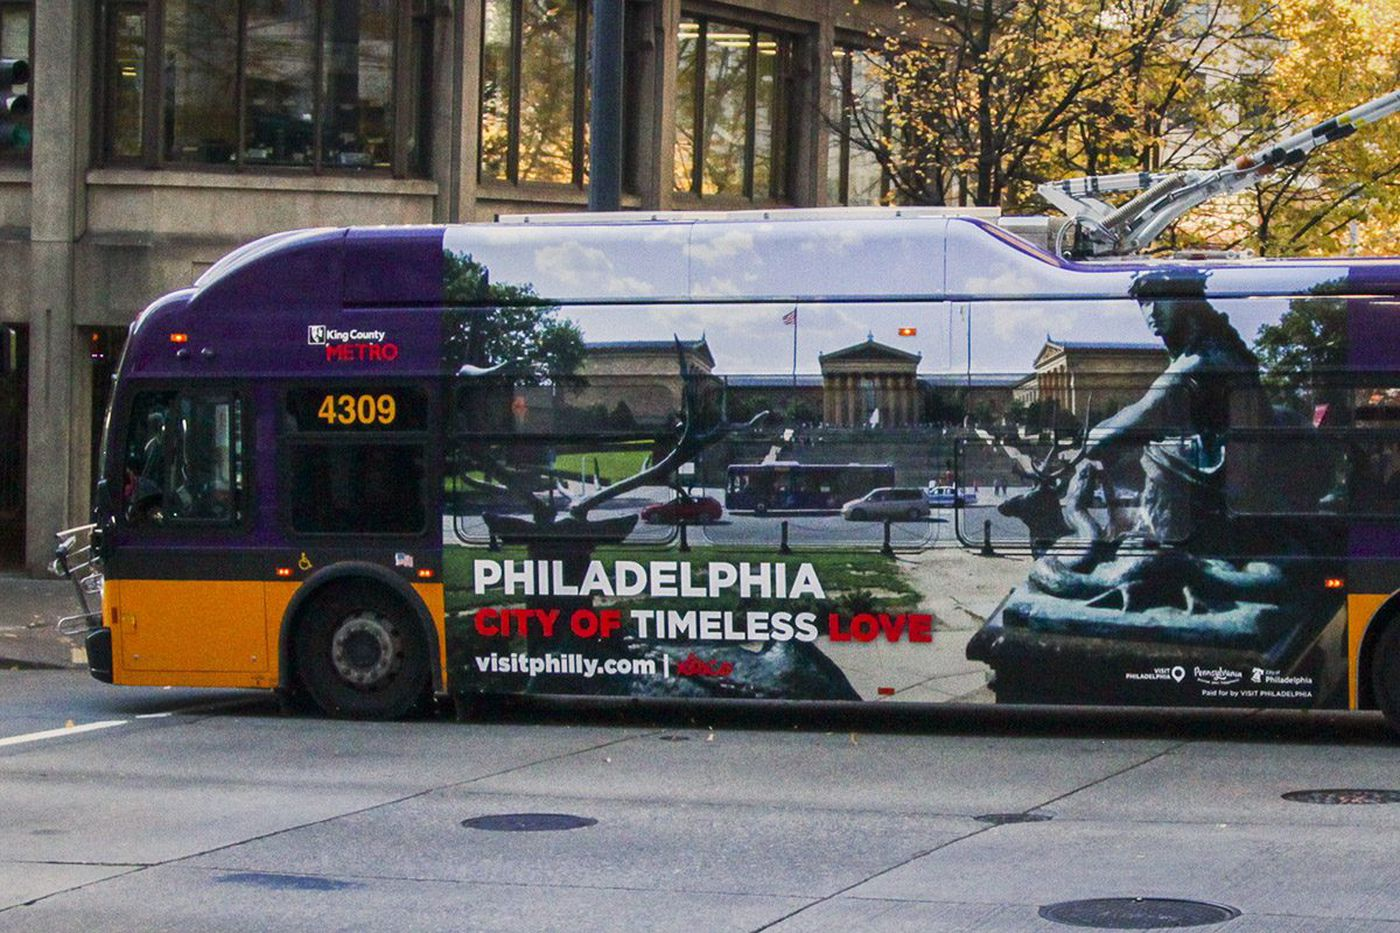 Philly launches ad blitz - in Seattle - to woo Amazon HQ2